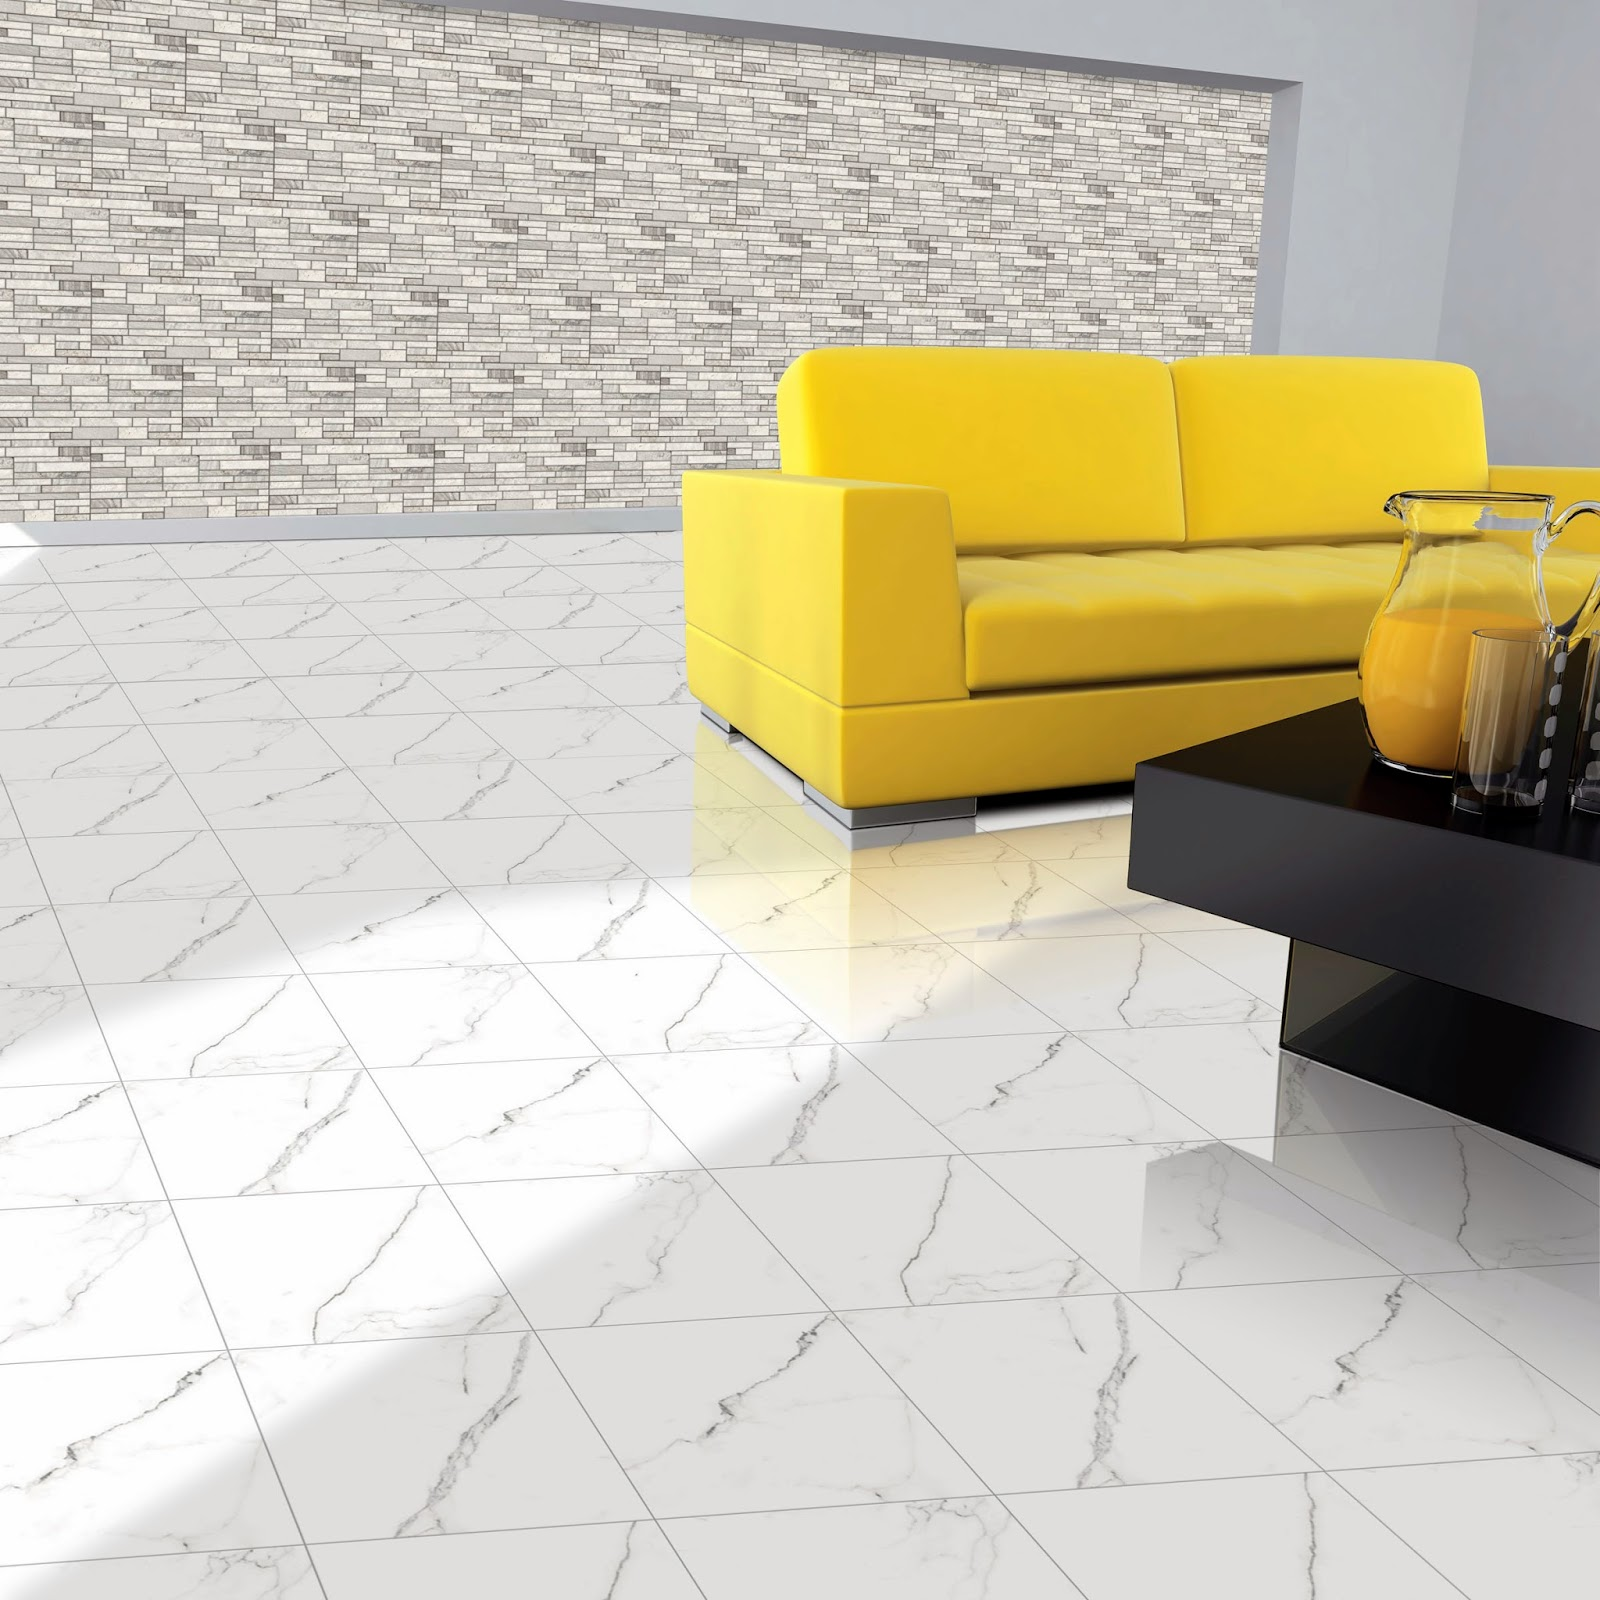 Amazing Superb Flooring For Living Room Wall Tiles Design Yellow Leather Arm Sofa Grey Tile Pattern Decal Black Gloss Wood Coffee Table